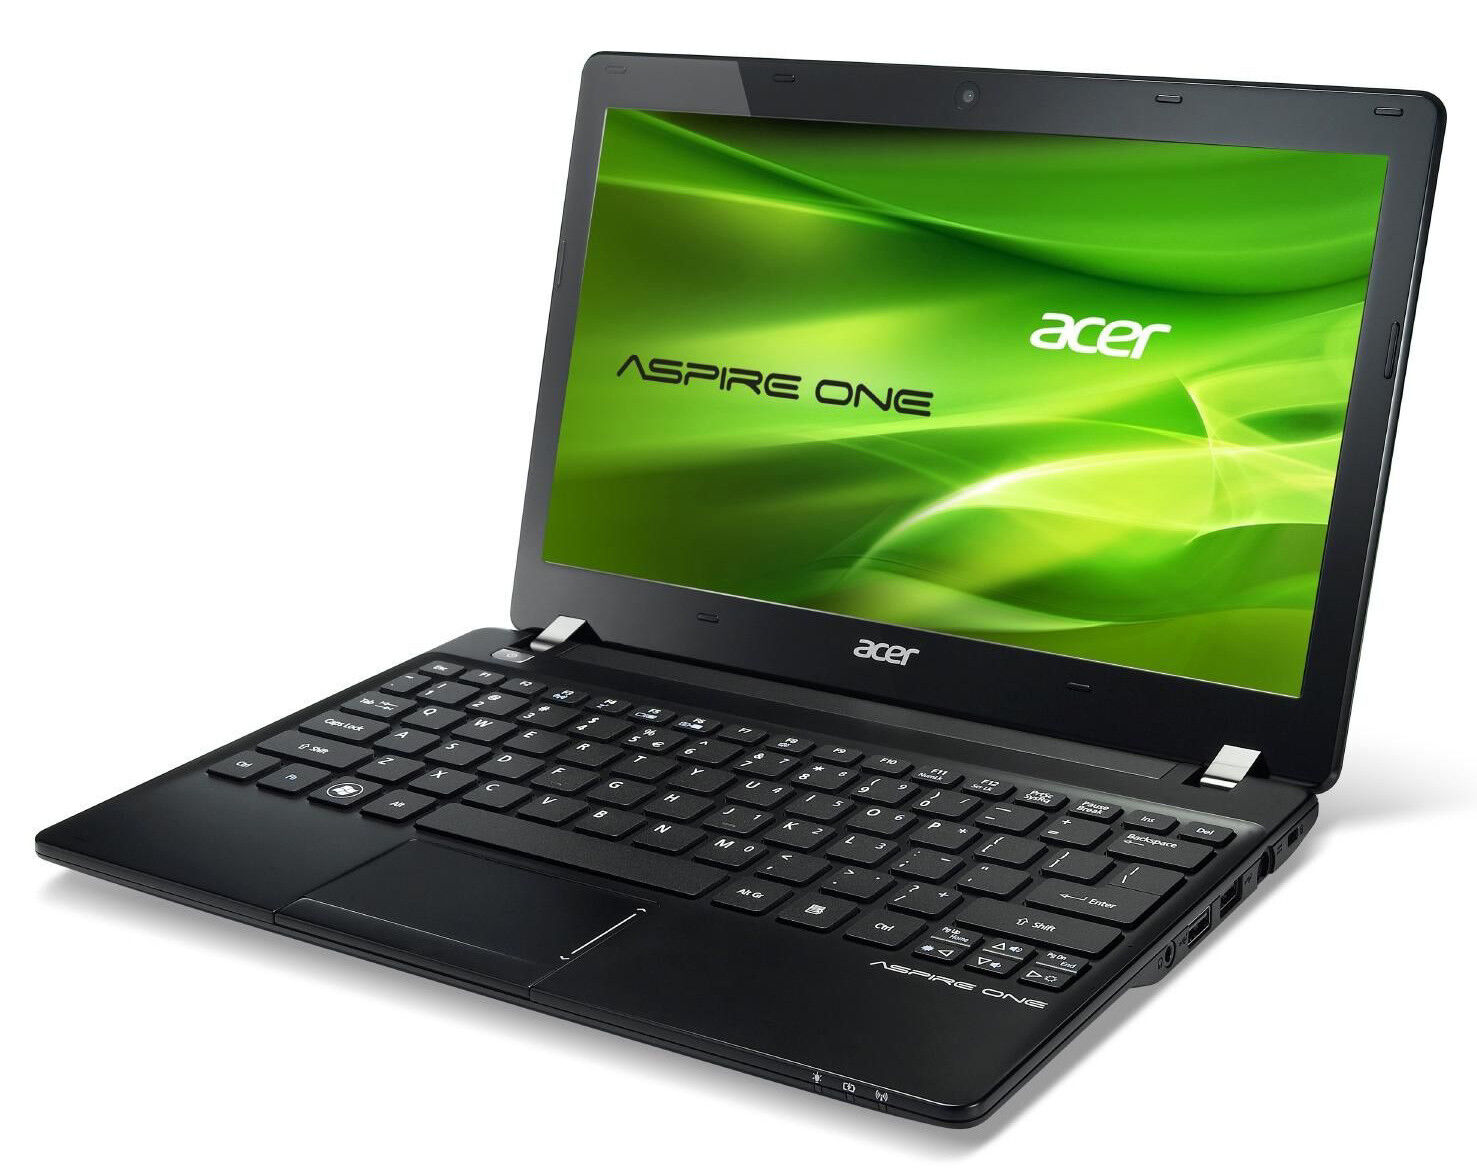 "Laptop - 11.6"" Acer Aspire One 725 Laptop Netbook AMD C-70 Windows 7 HDMI Webcam FREE S/H"